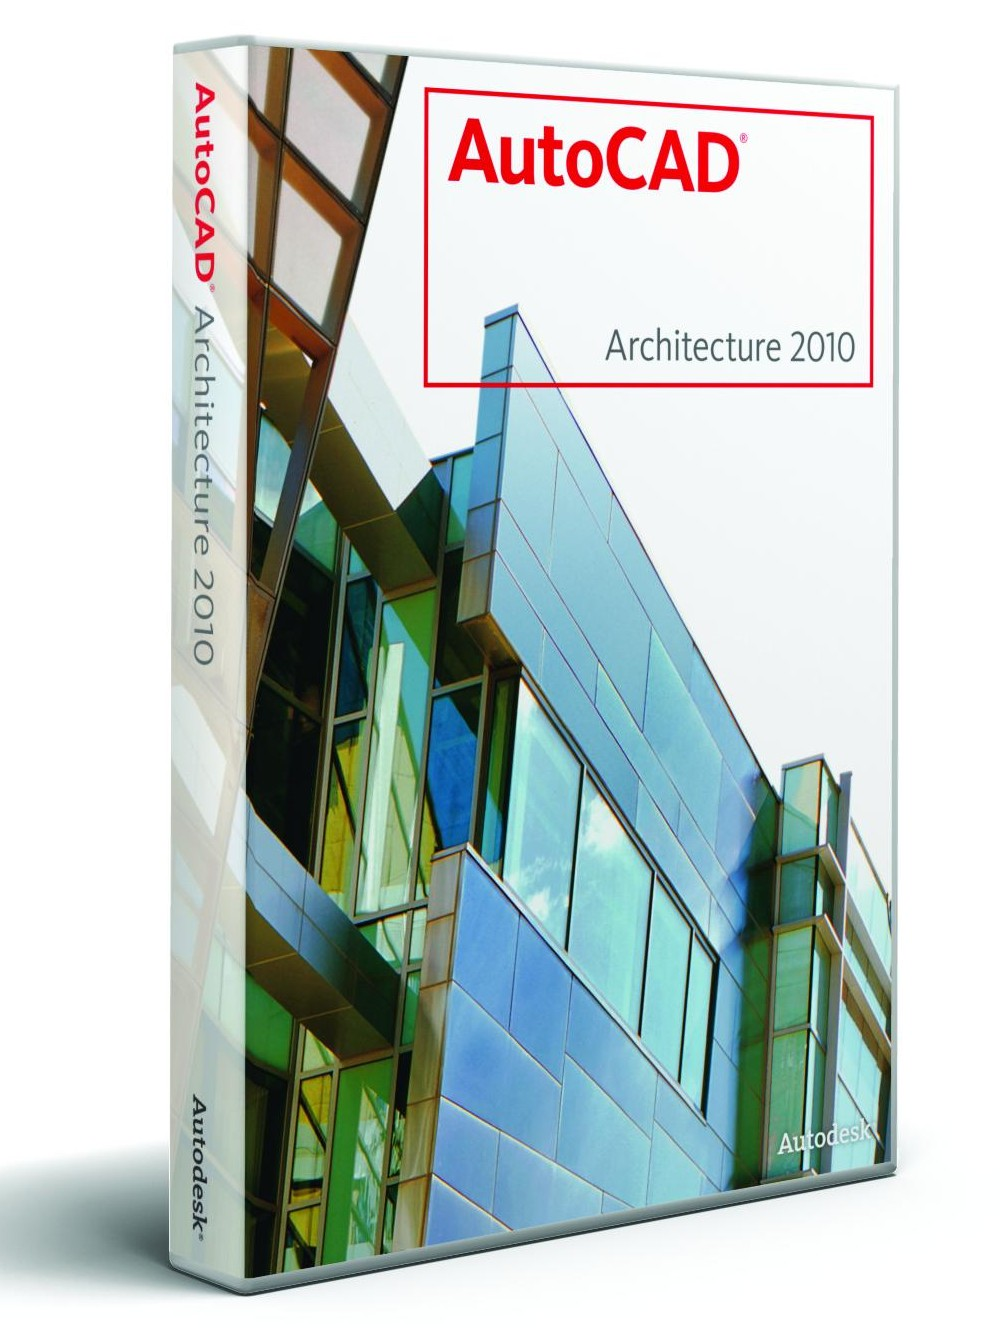 descripcion autocad architecture es la version de autocad creada para